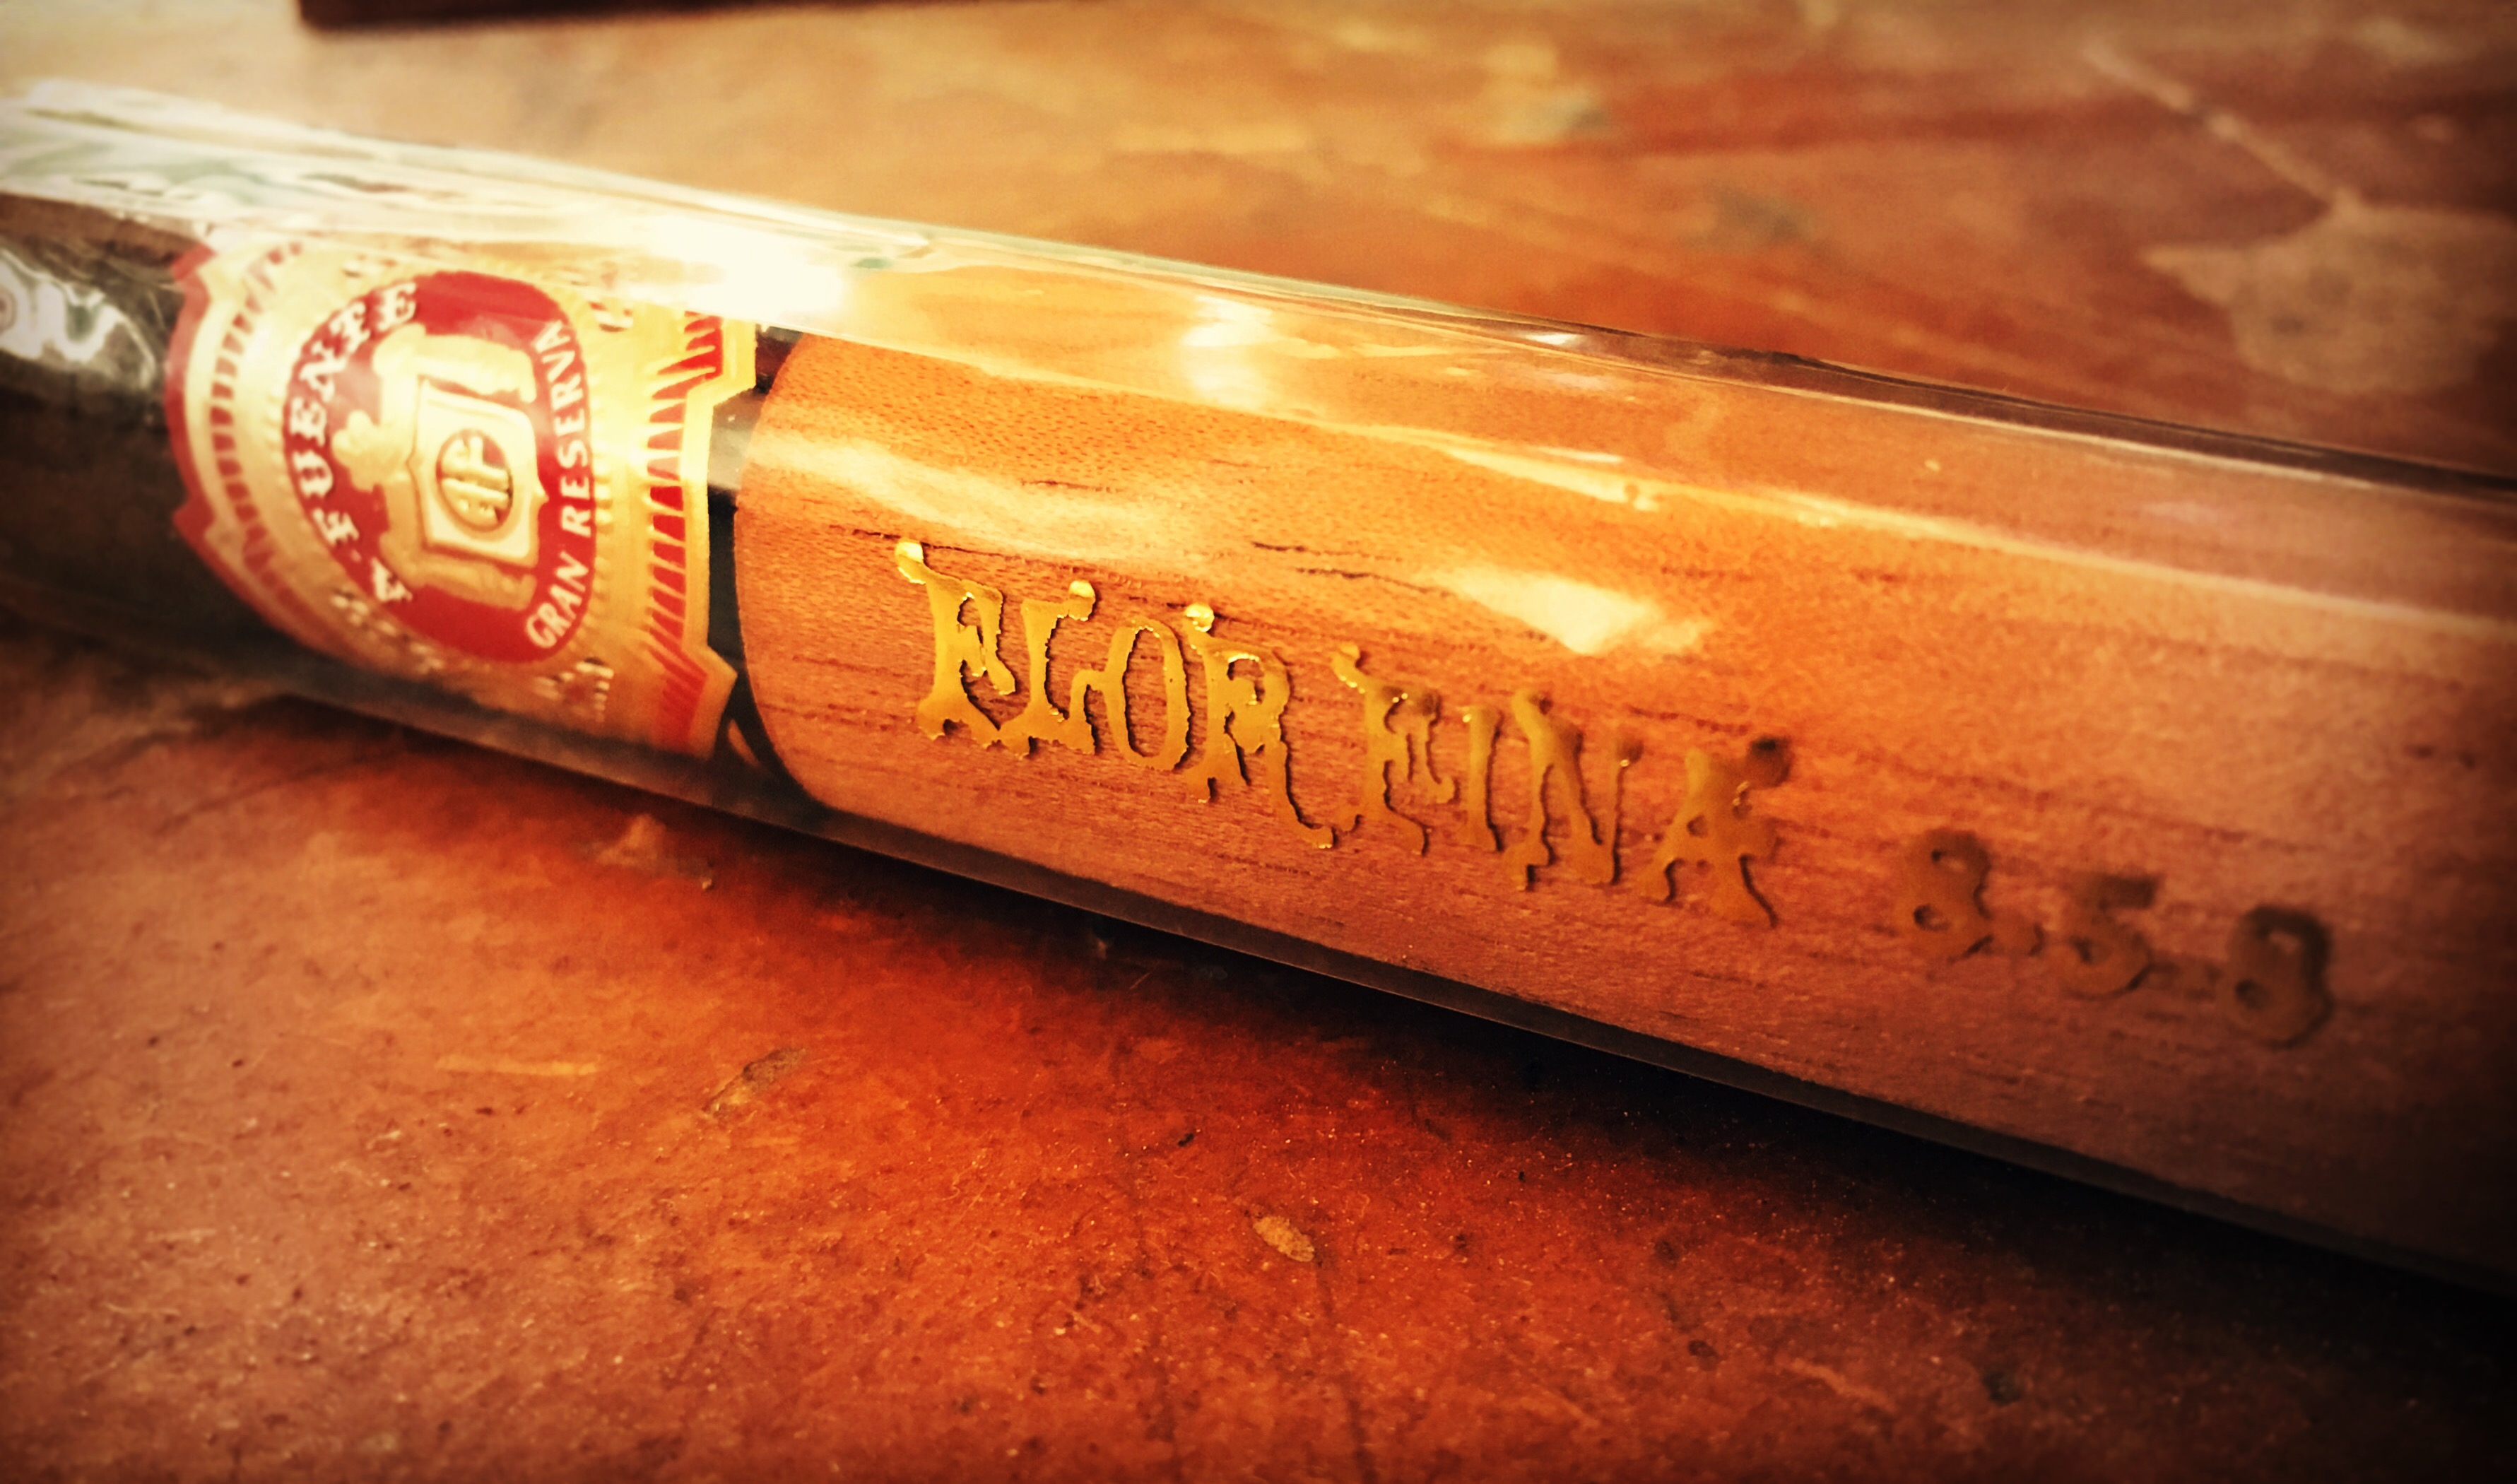 Arturo Fuente Sun Grown Flor Fina 8-5-8 in Cello